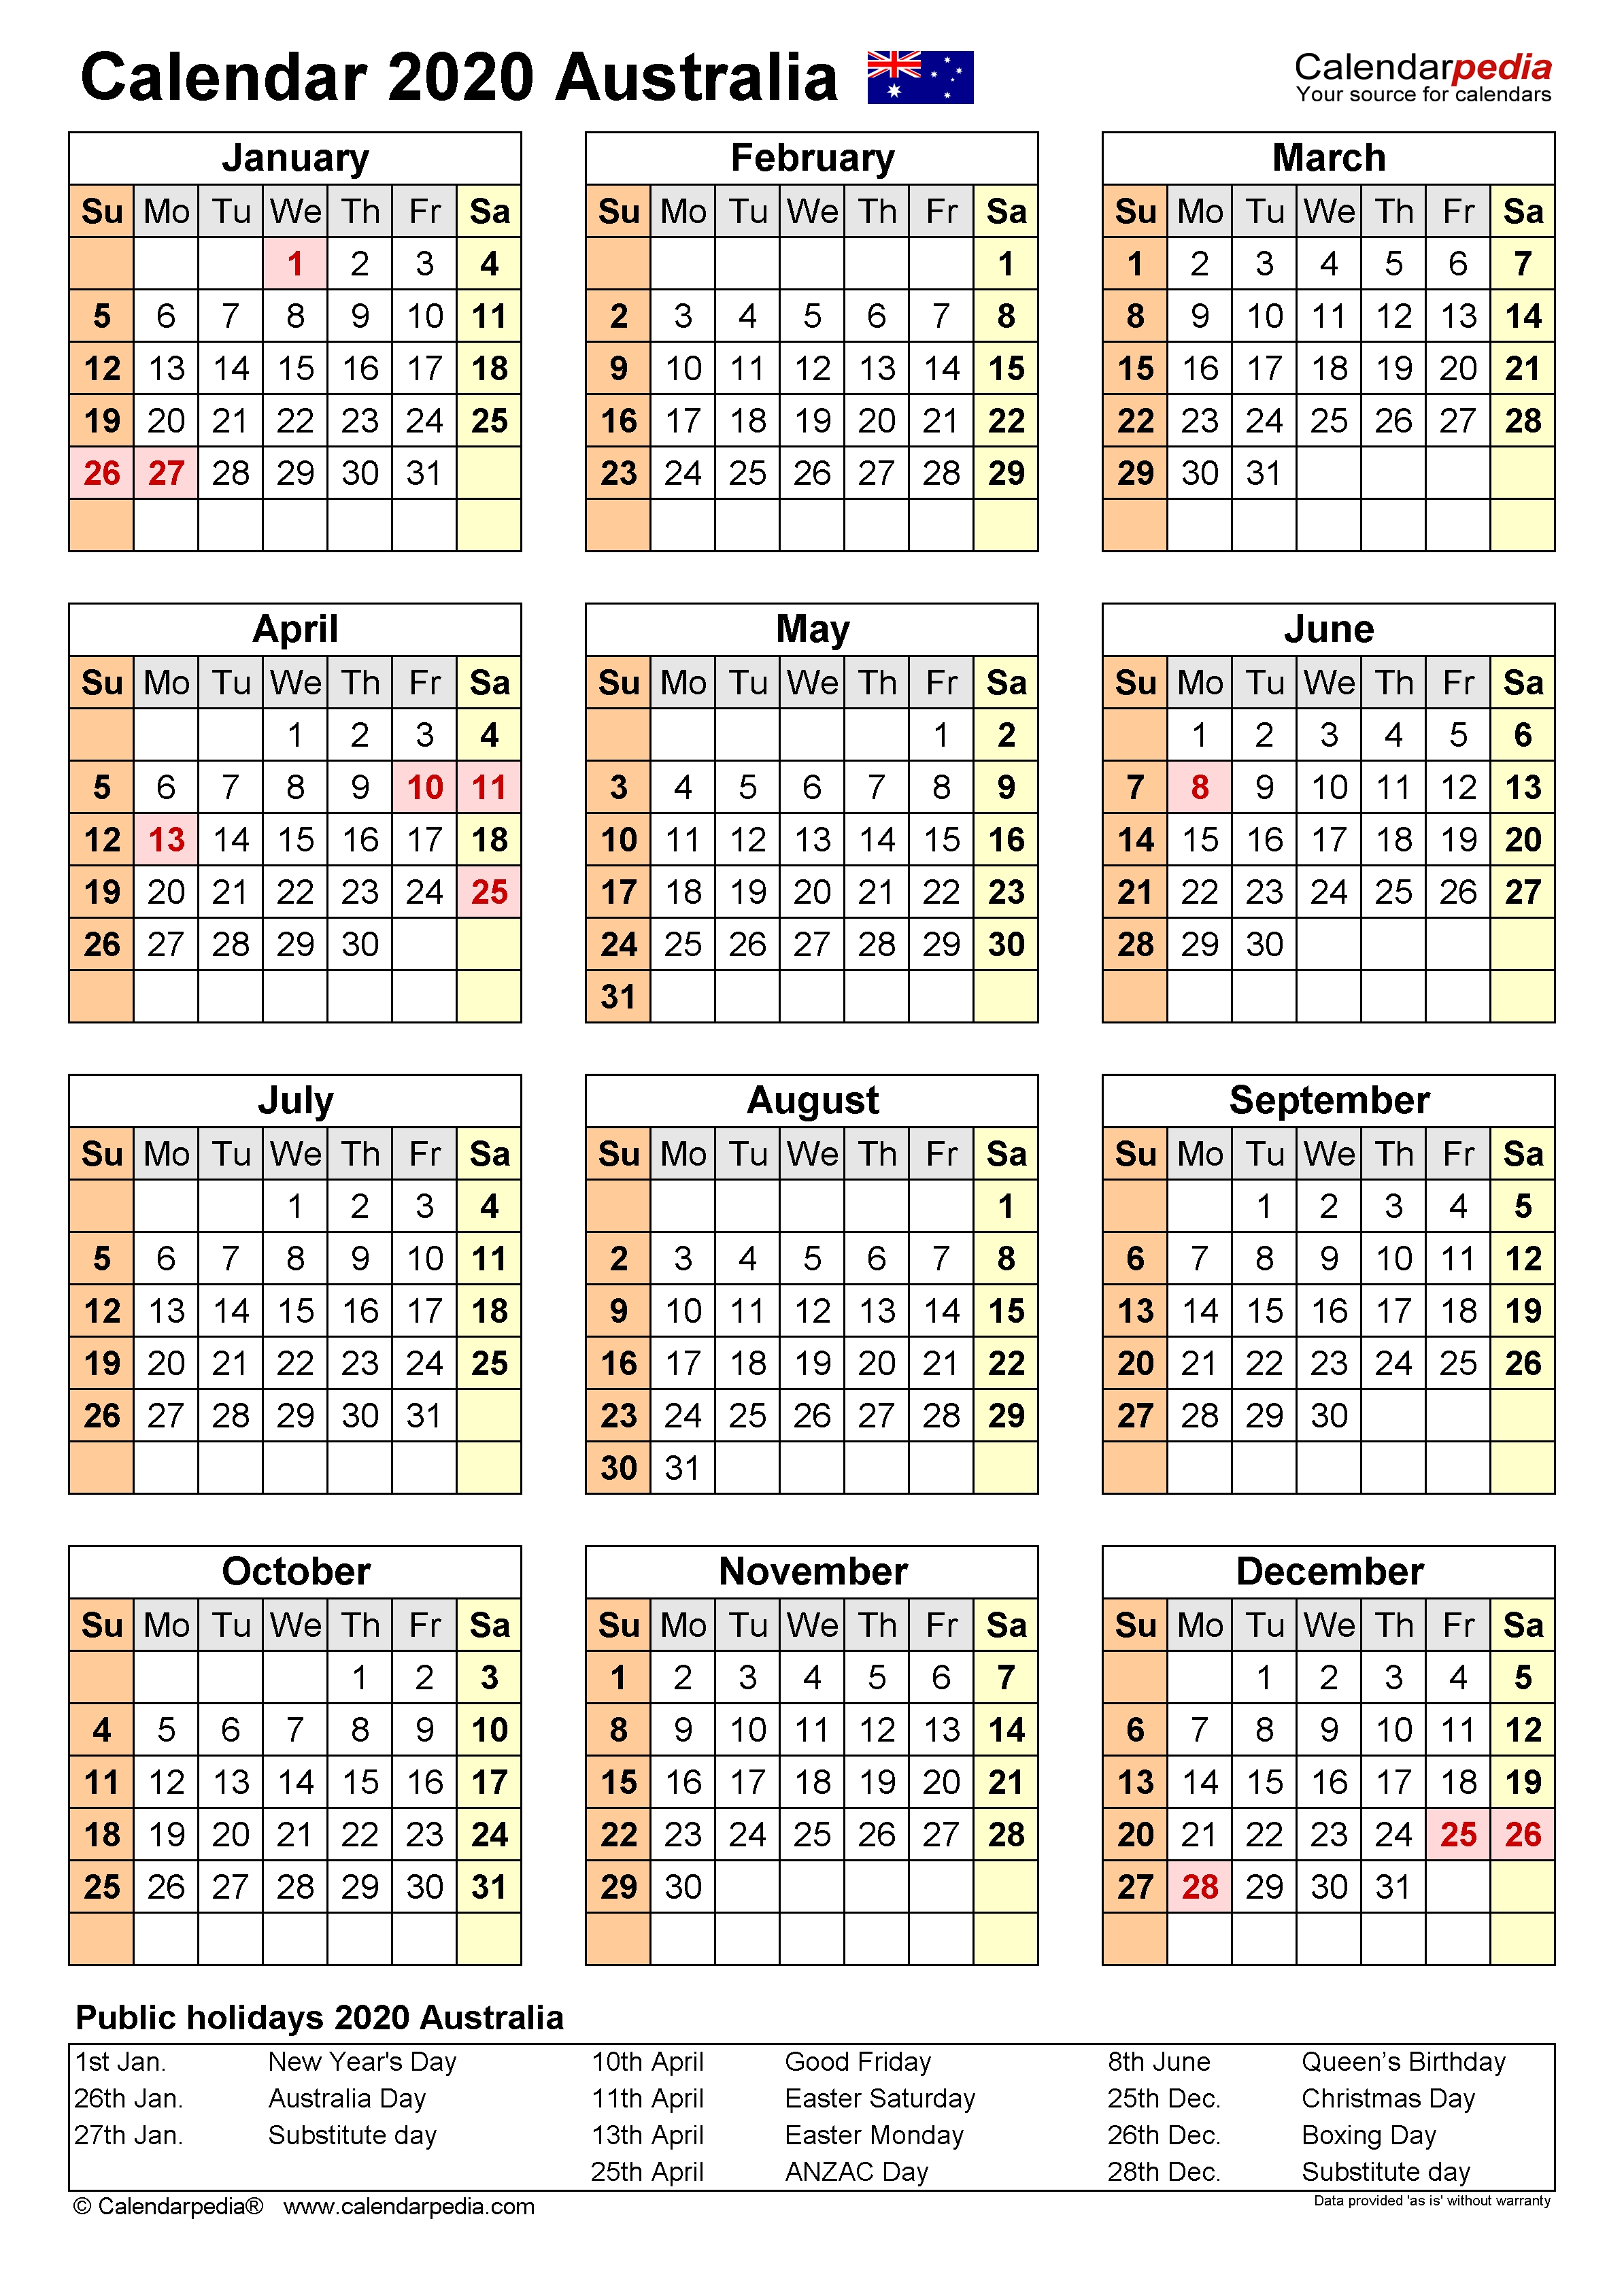 Australia Calendar 2020 - Free Printable Word Templates-Financial Calendar Template Australia 2020-2020